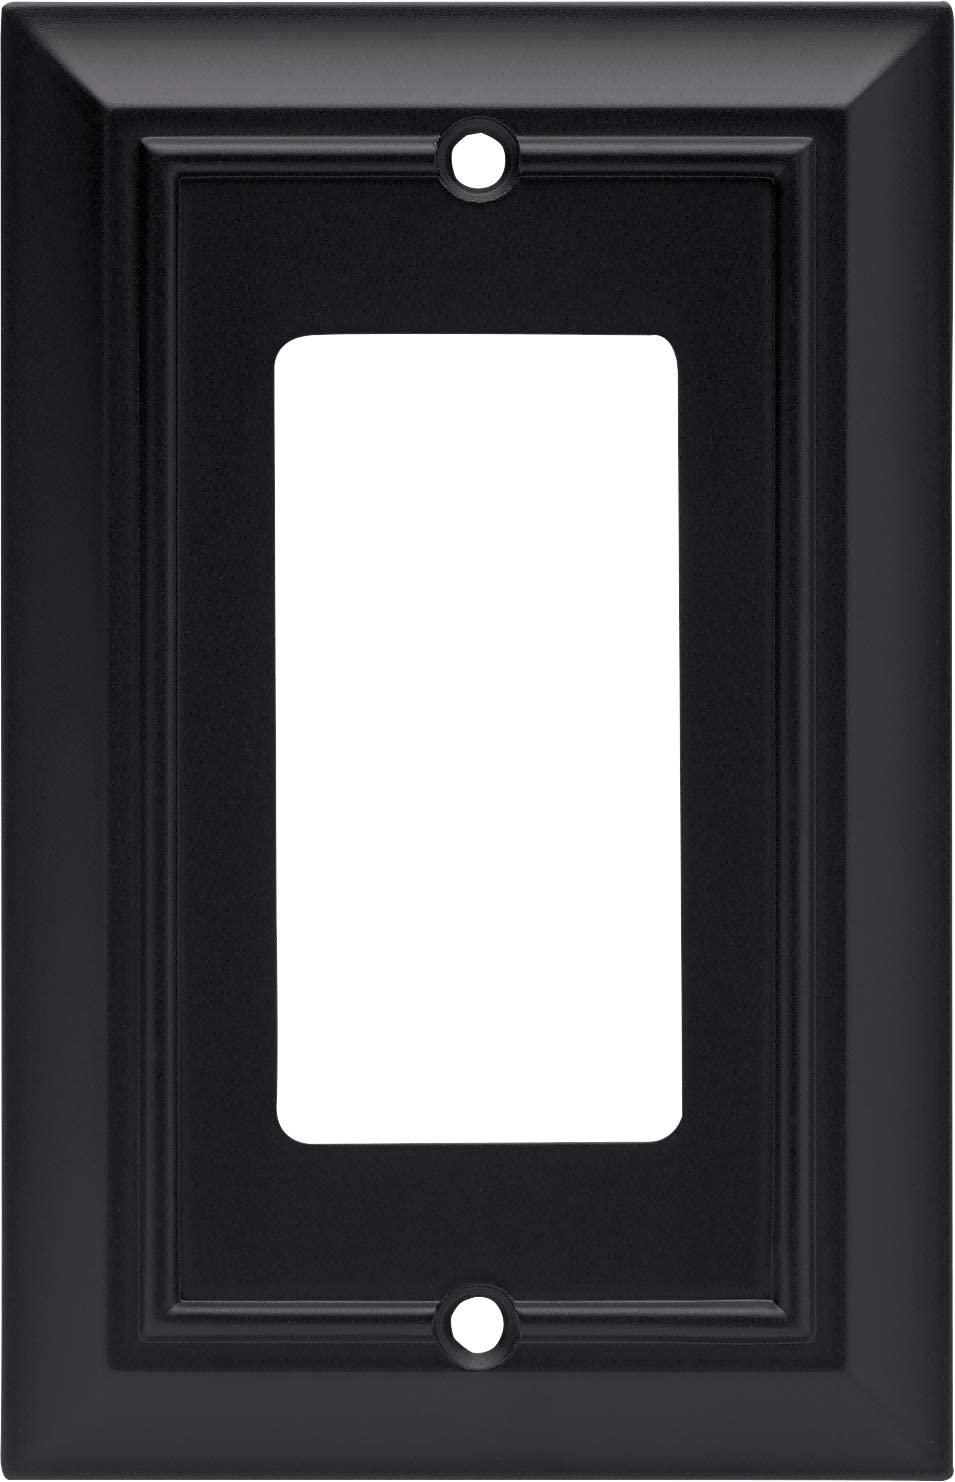 Architectural Single Decorator Wall Plate / Switch Plate / Cover, Flat Black, Packaging May Vary